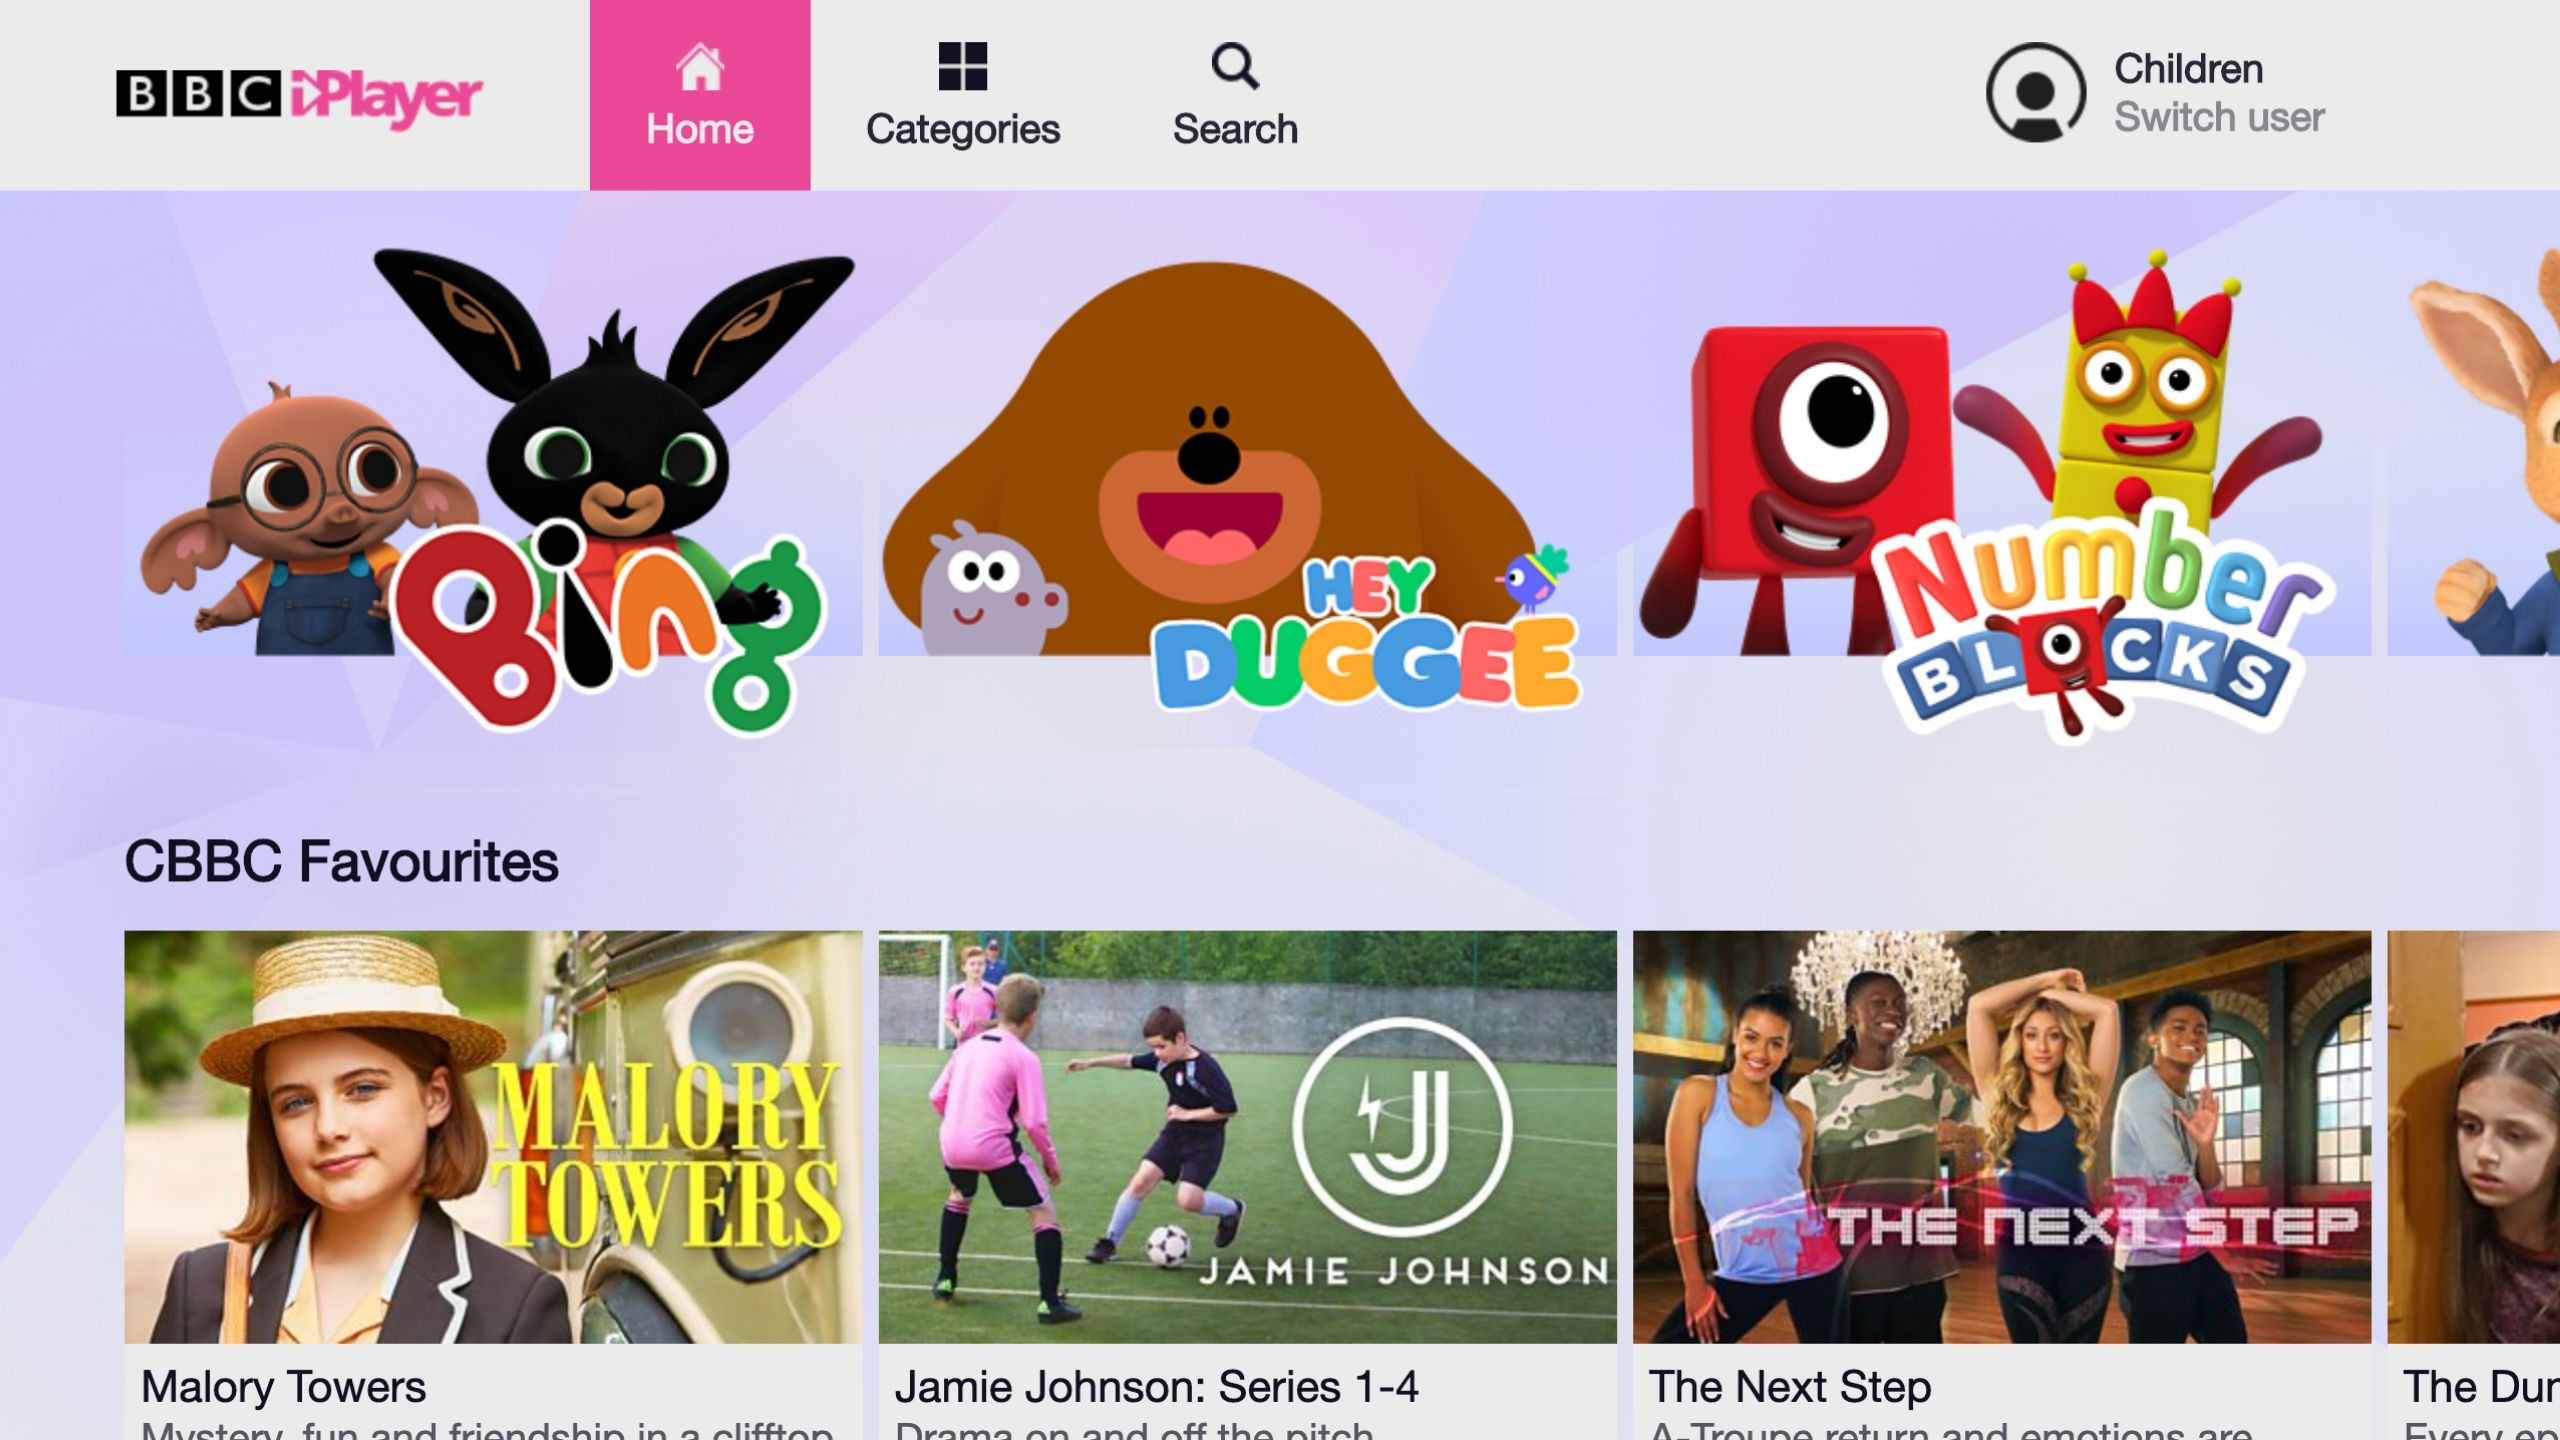 The children's mode interface on BBC iPlayer, a purple background with lots of cartoon shows to choose from